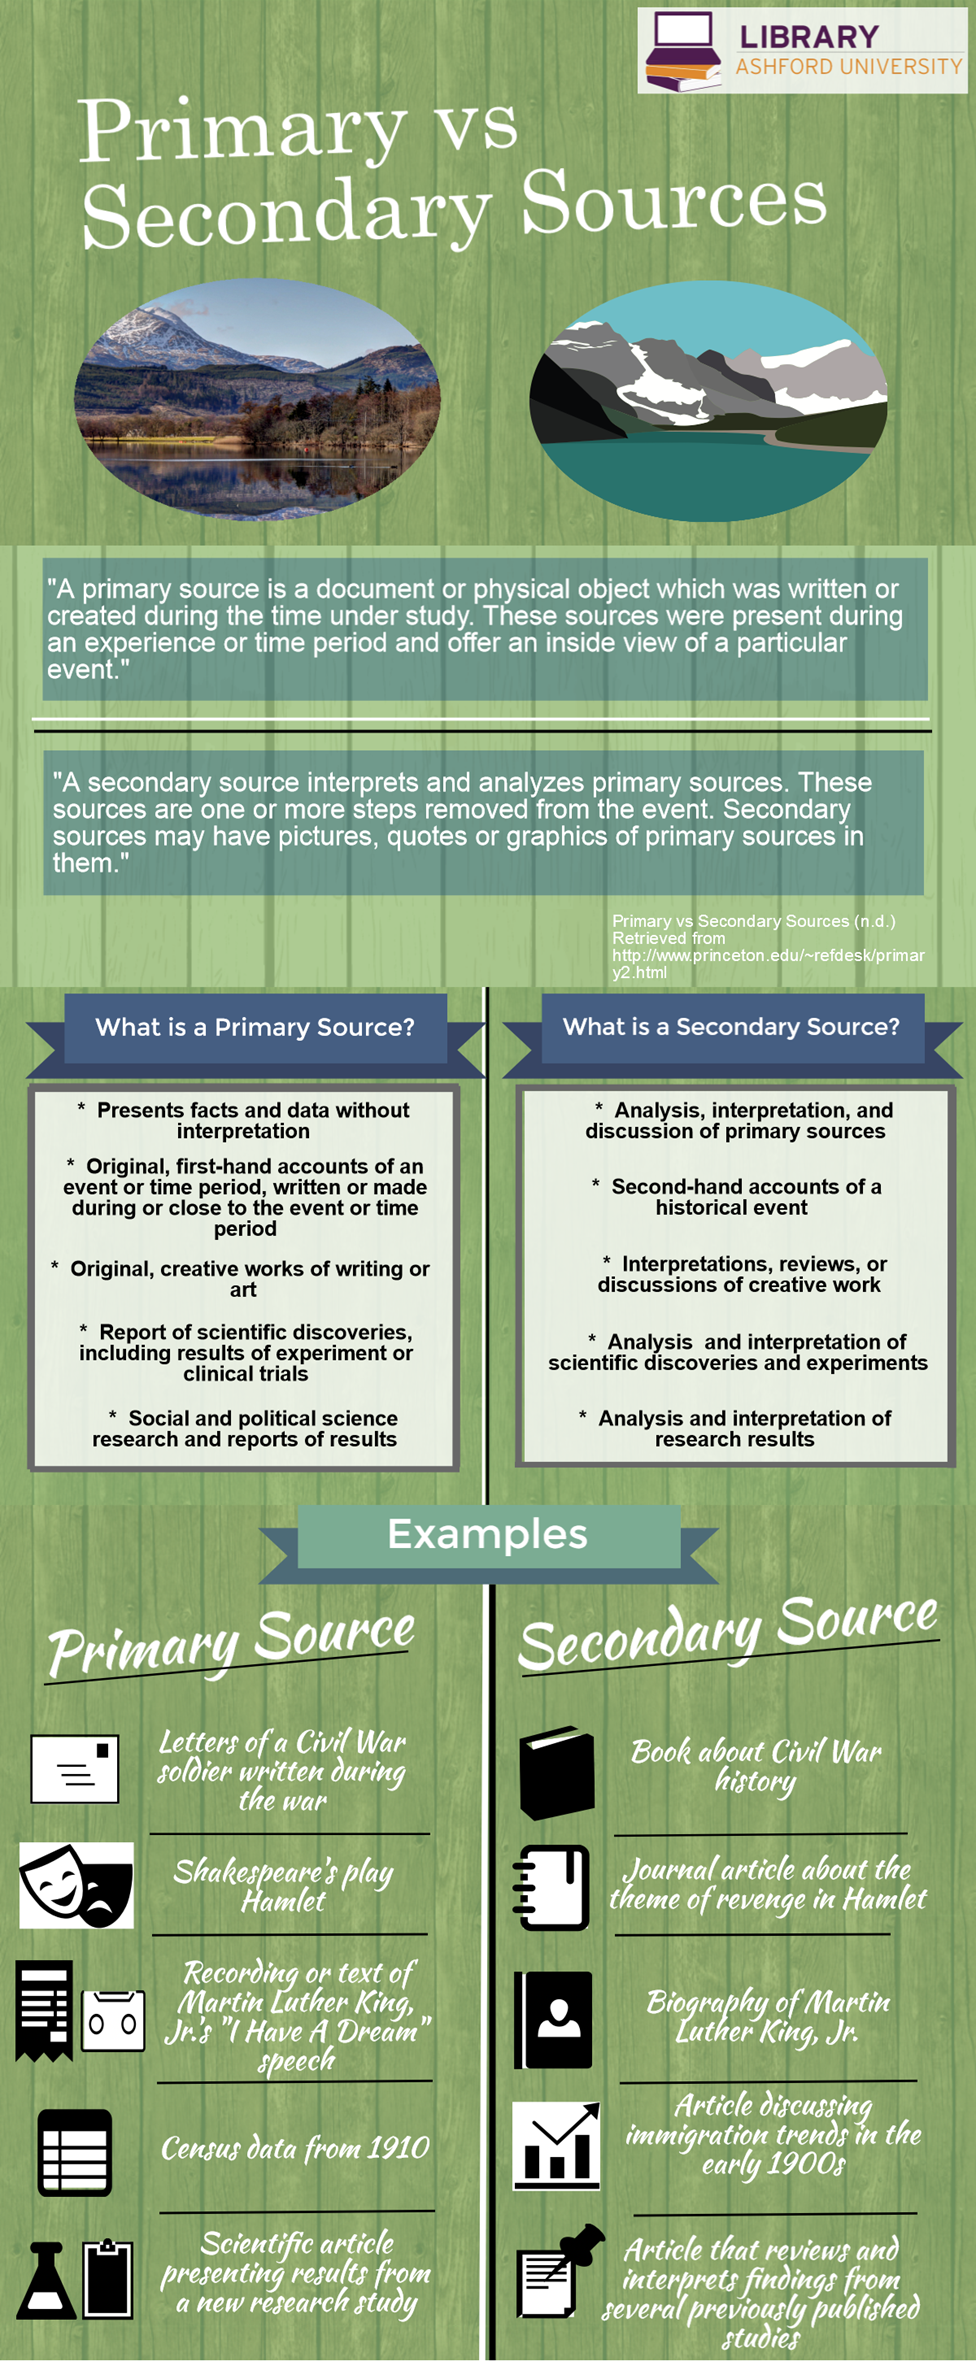 Primary Vs Secondary Sources Via Ashford University Library Primary And Secondary Sources Secondary Source Information Literacy